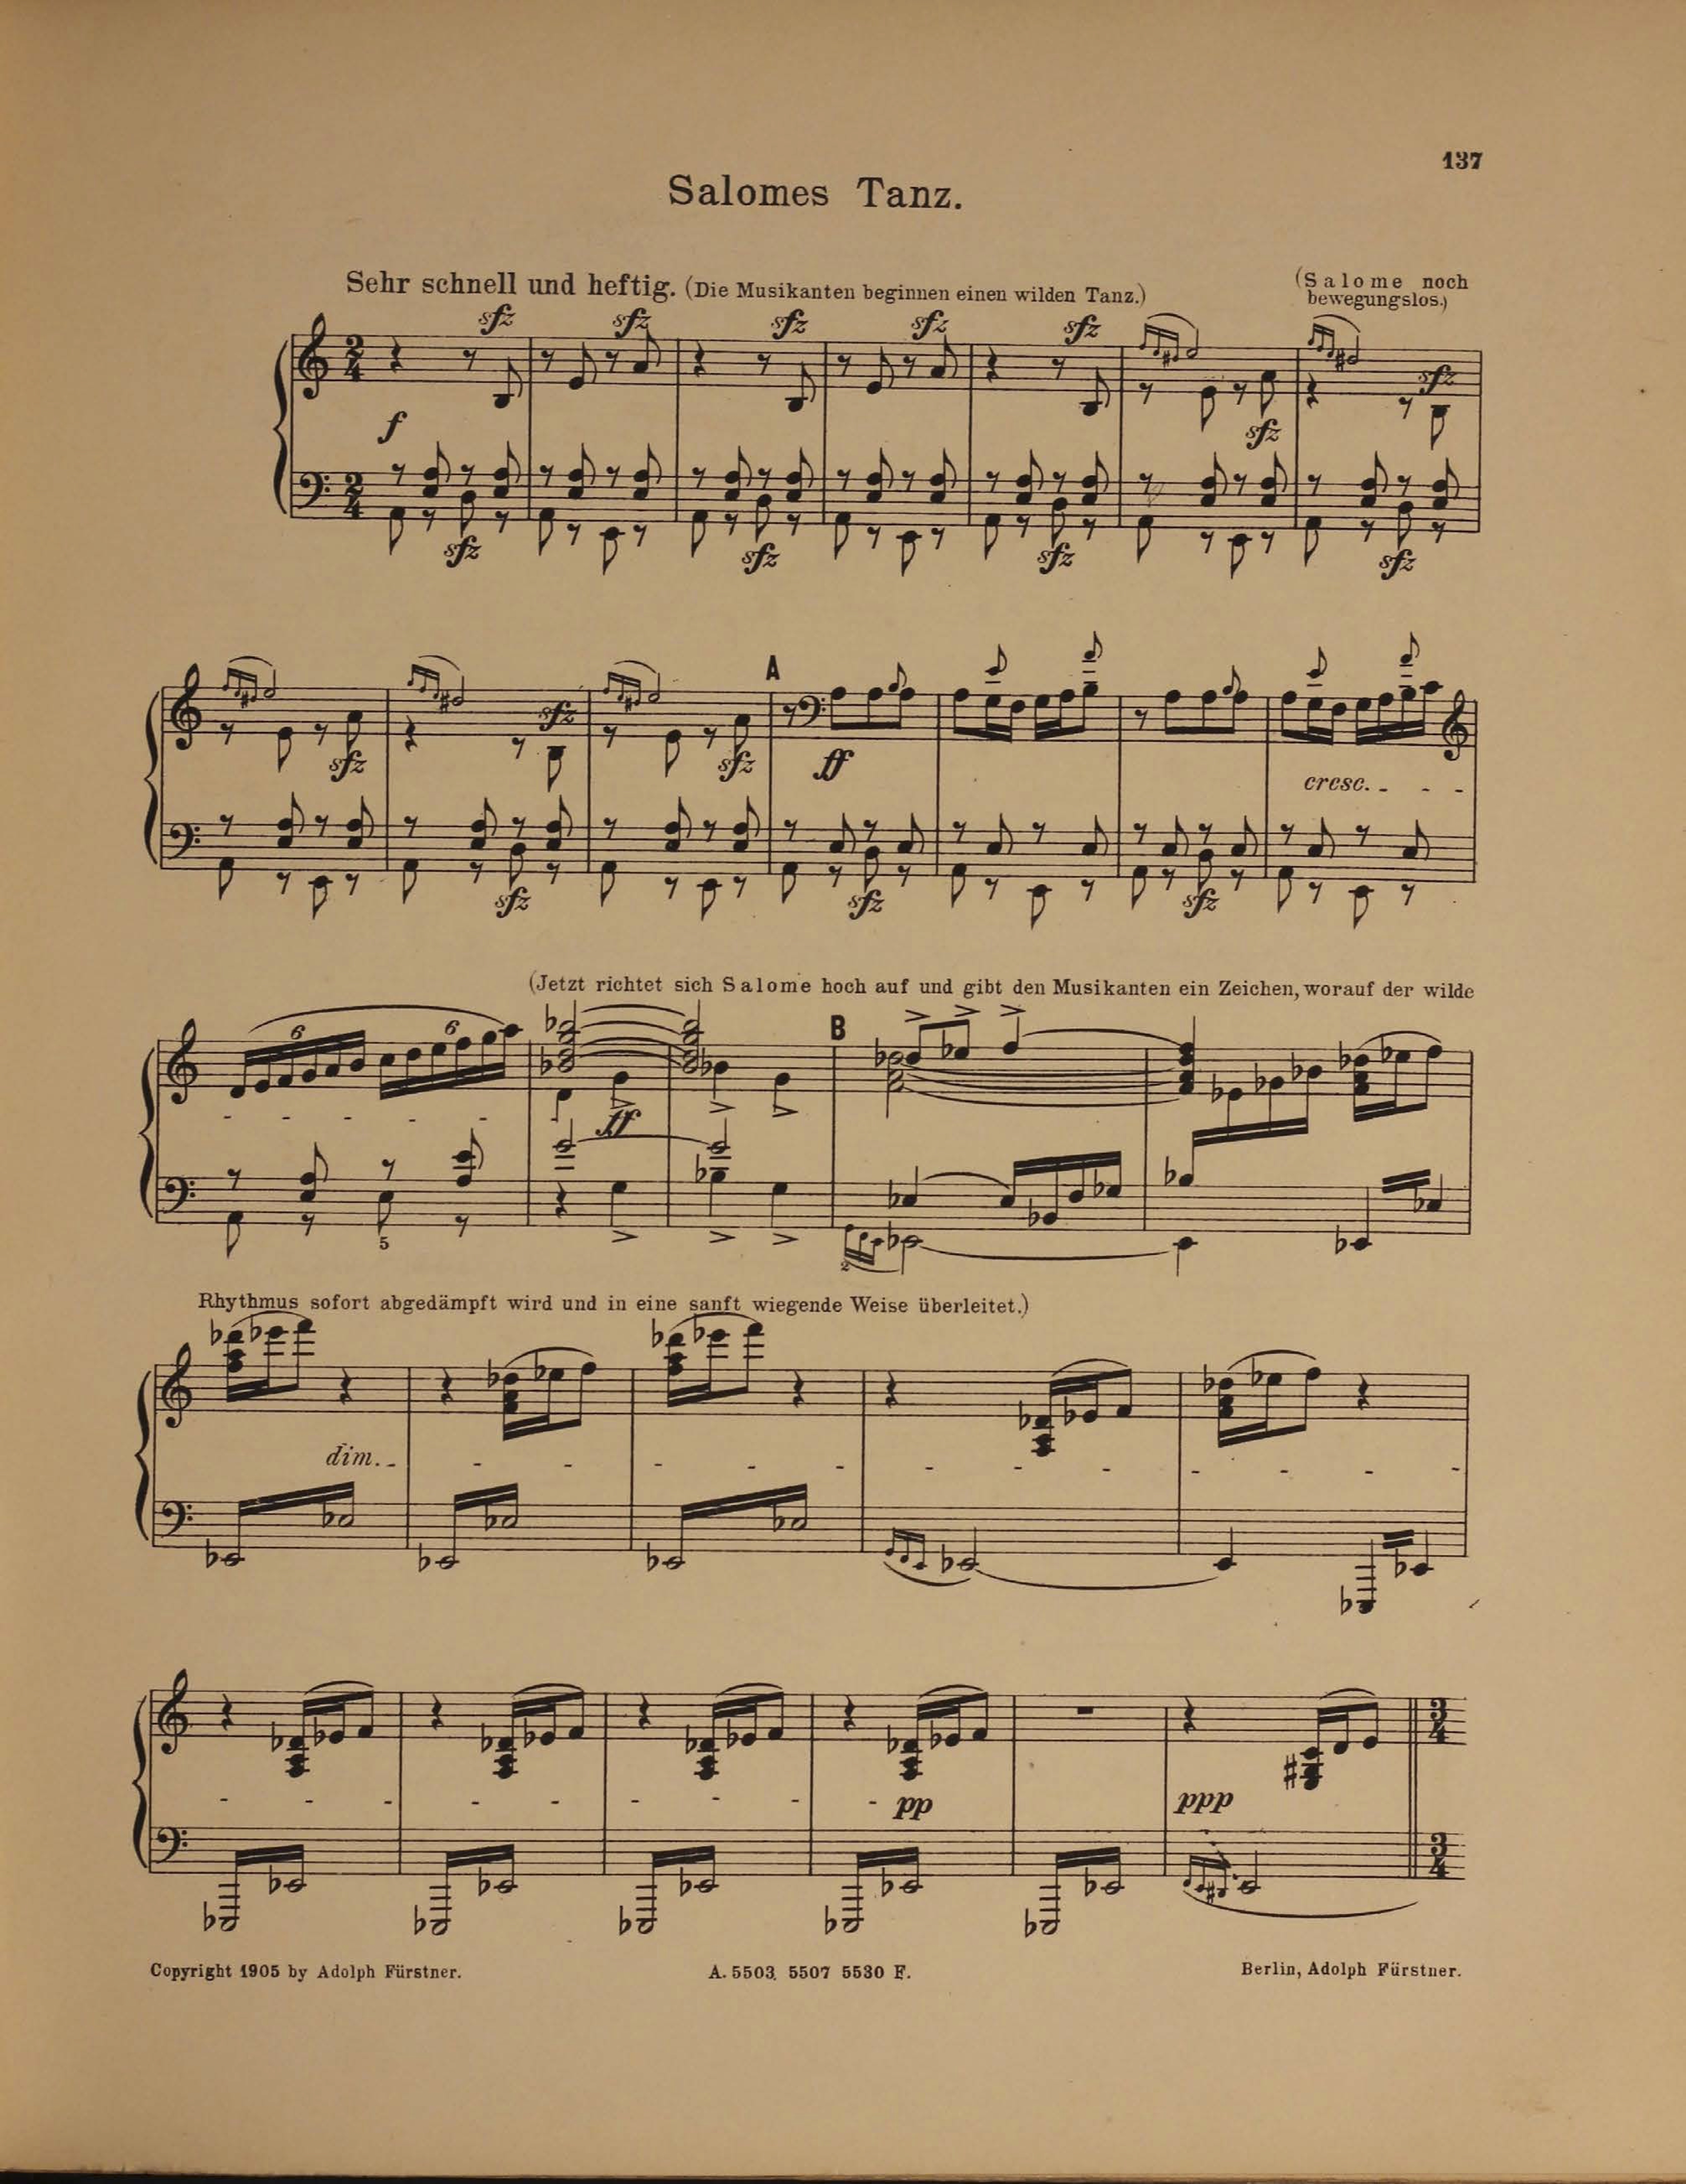 Score of Salome's Dance of the Seven Veils